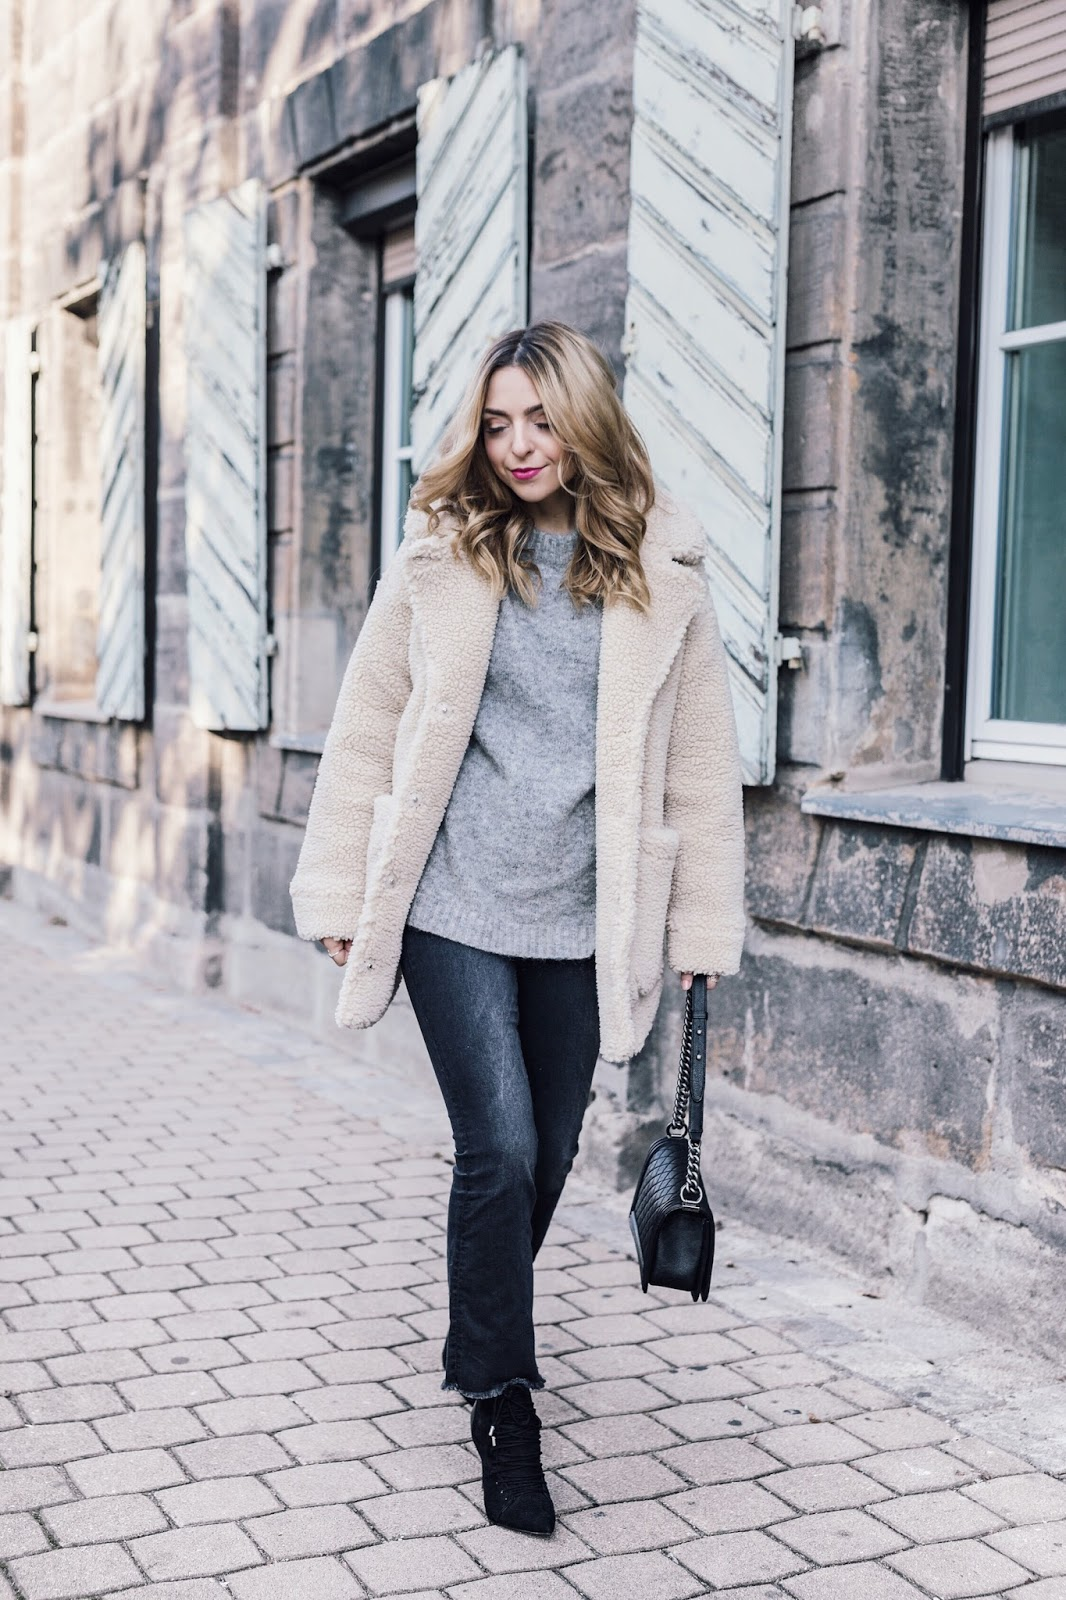 Monki-Teddy-Jacket-Outfit-Want-Get-Repeat-Blog-01 - Want Get Repeat 06af6f20c